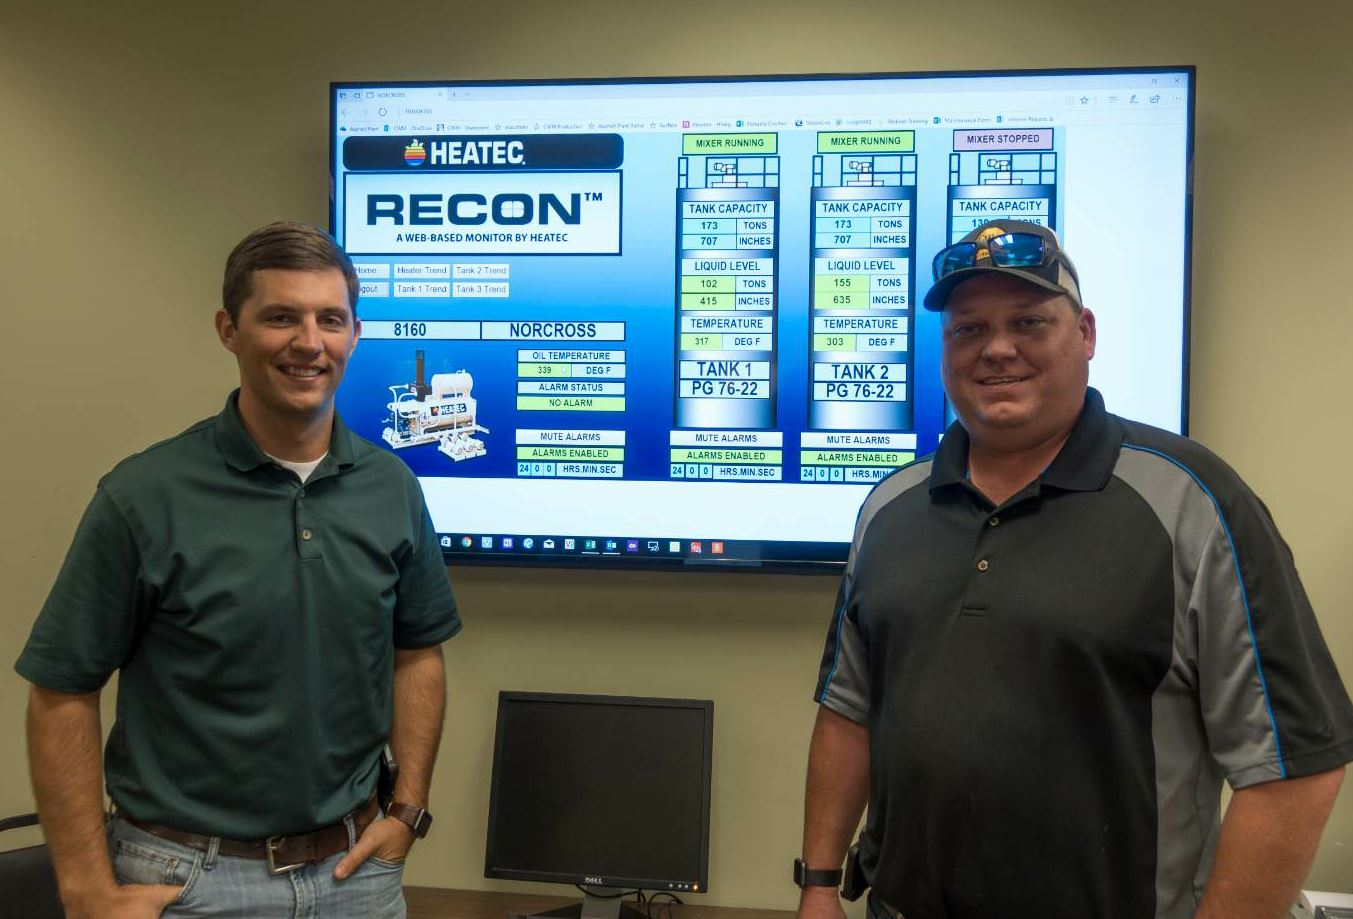 Joe Hines (left) and Will Wetherbee (right) spoke highly of the efficiency the Recon system has brought to operations.